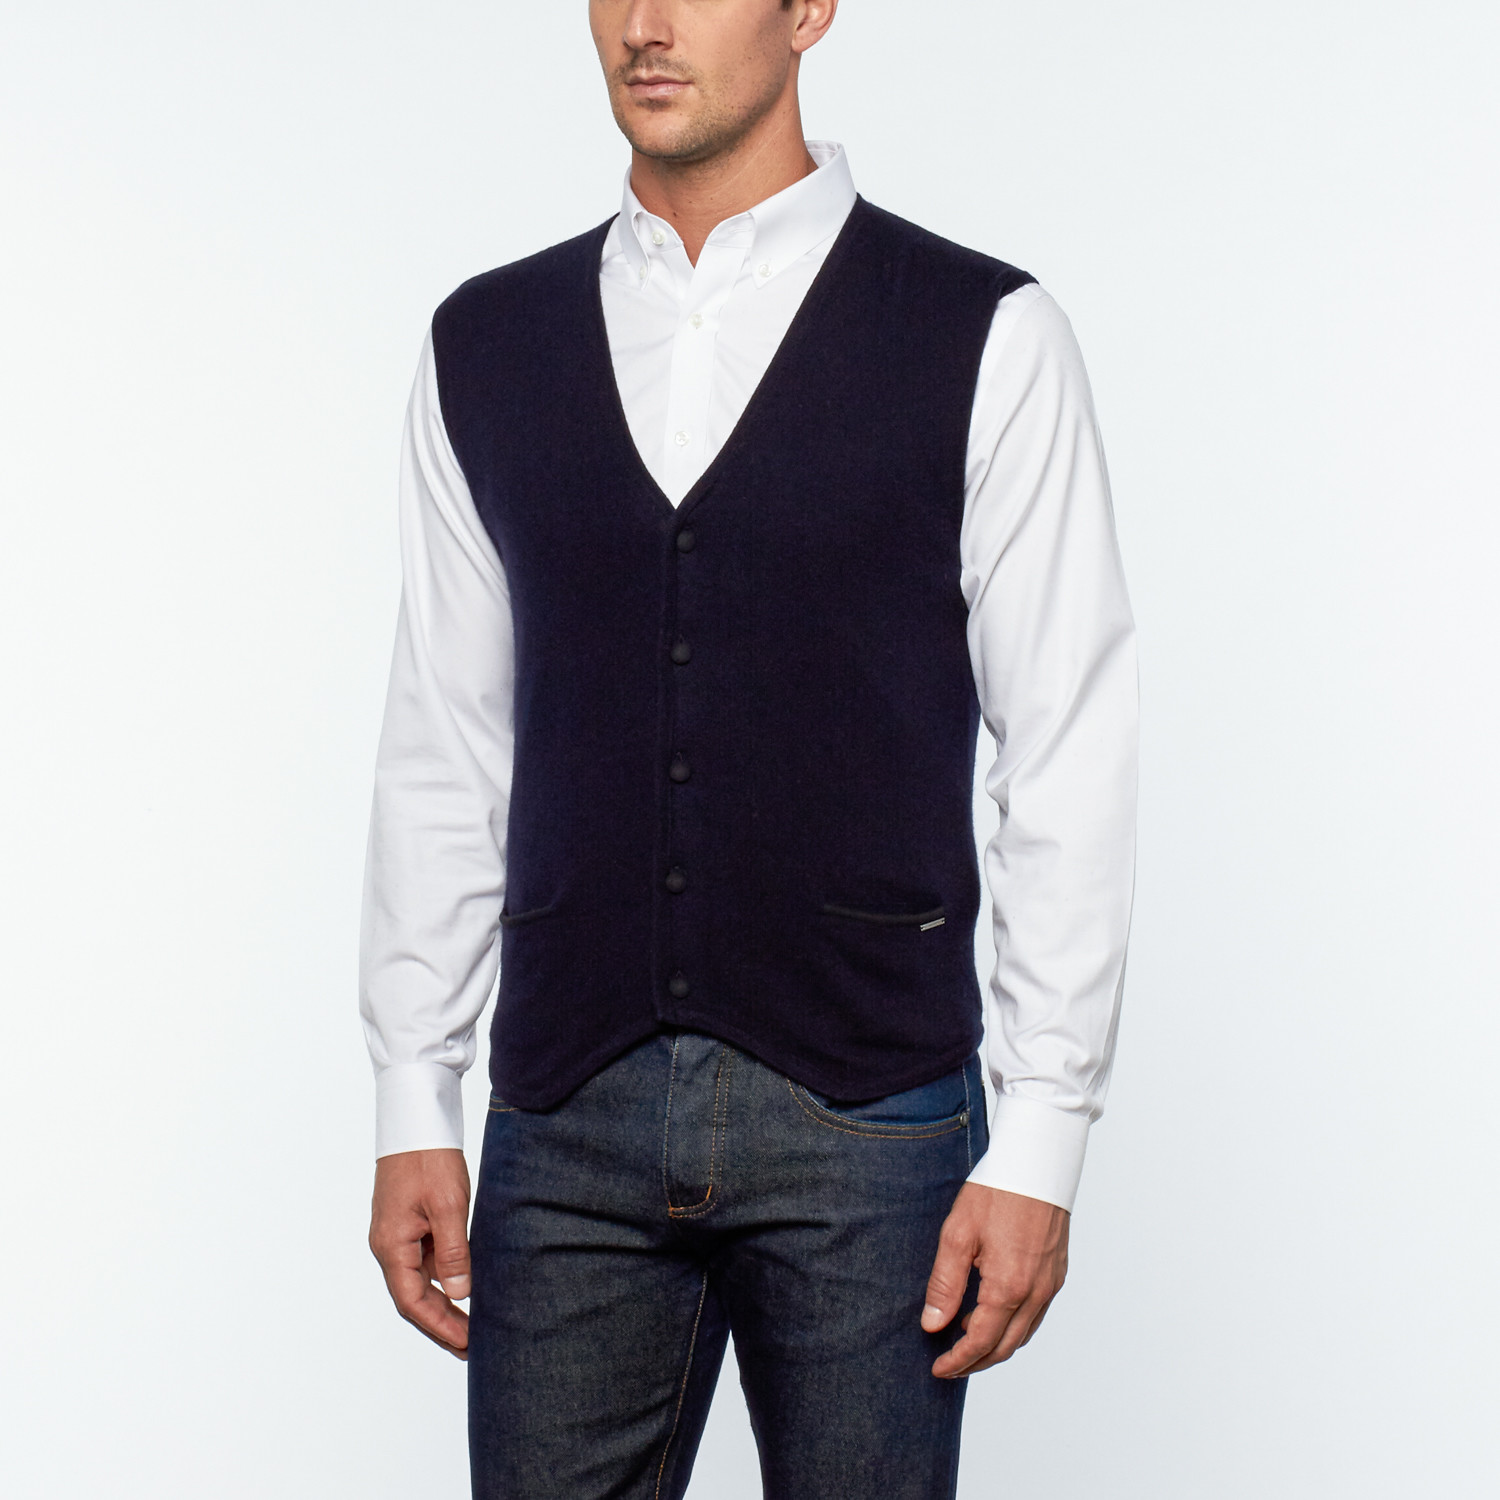 Valdes Cashmere Button-Up Sweater Vest // Navy Blue (S) - Silk and ...